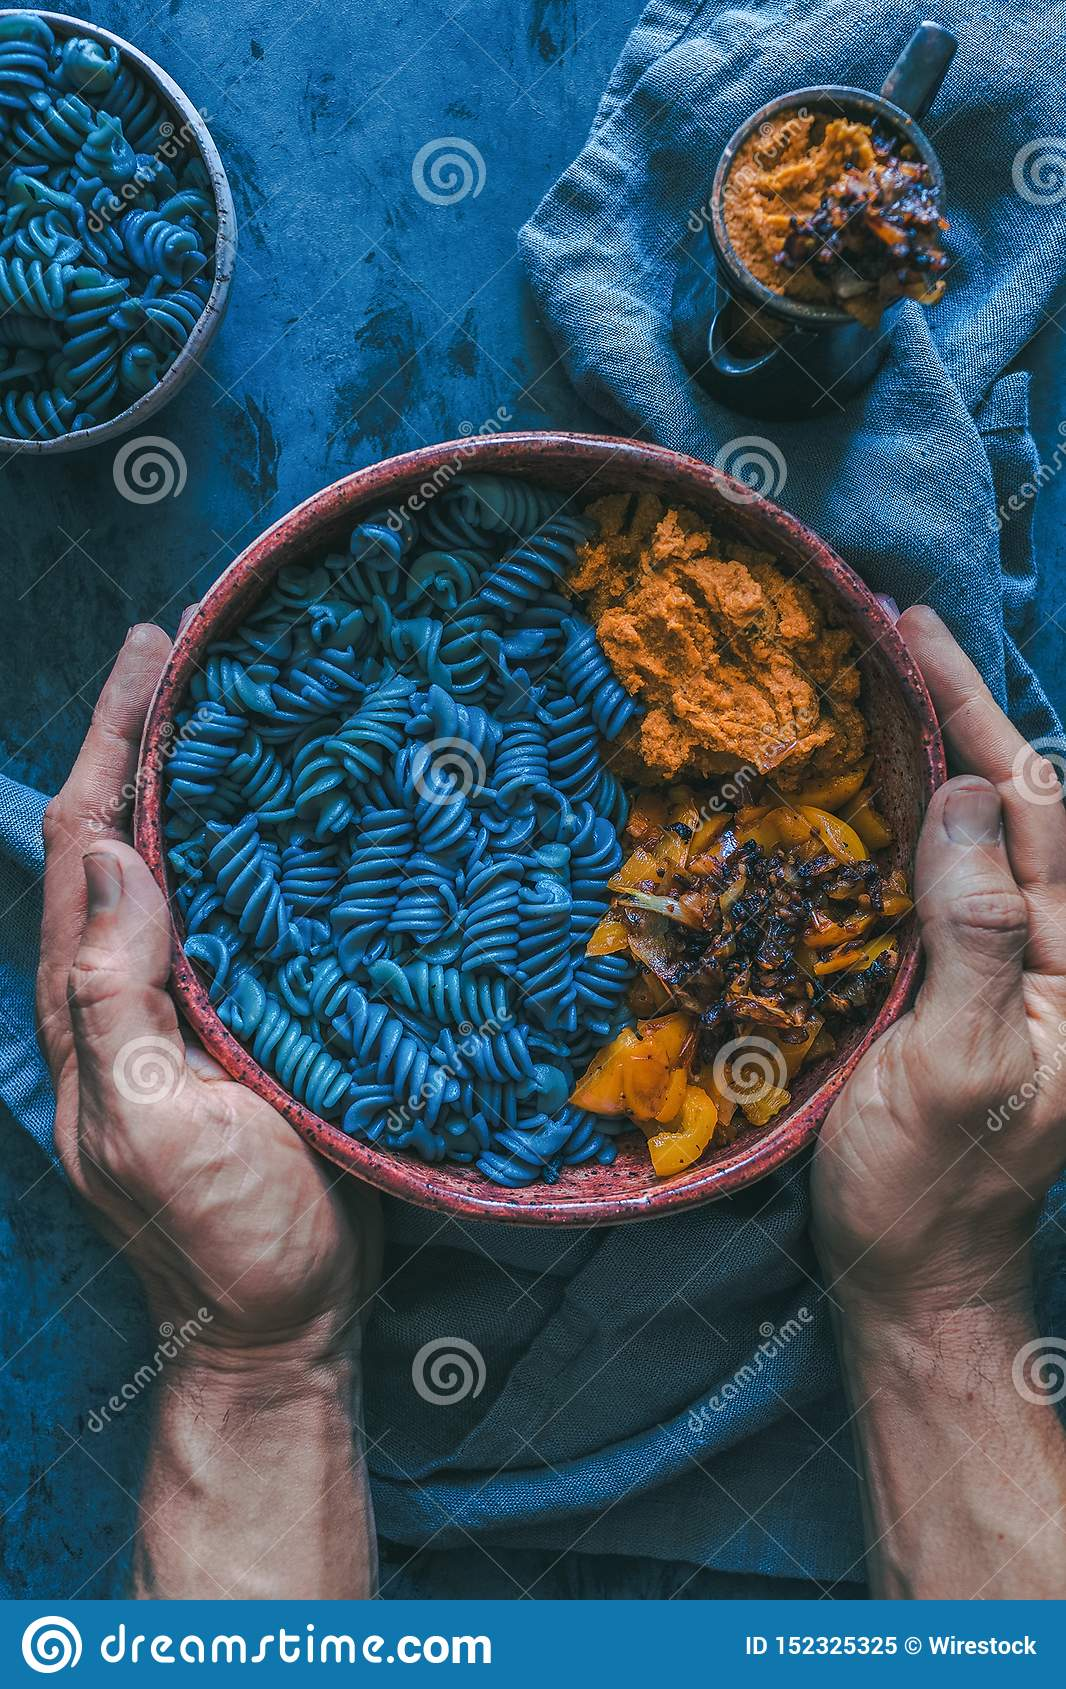 Closeup of a male holding a plate with vegan mermaid pasta in it